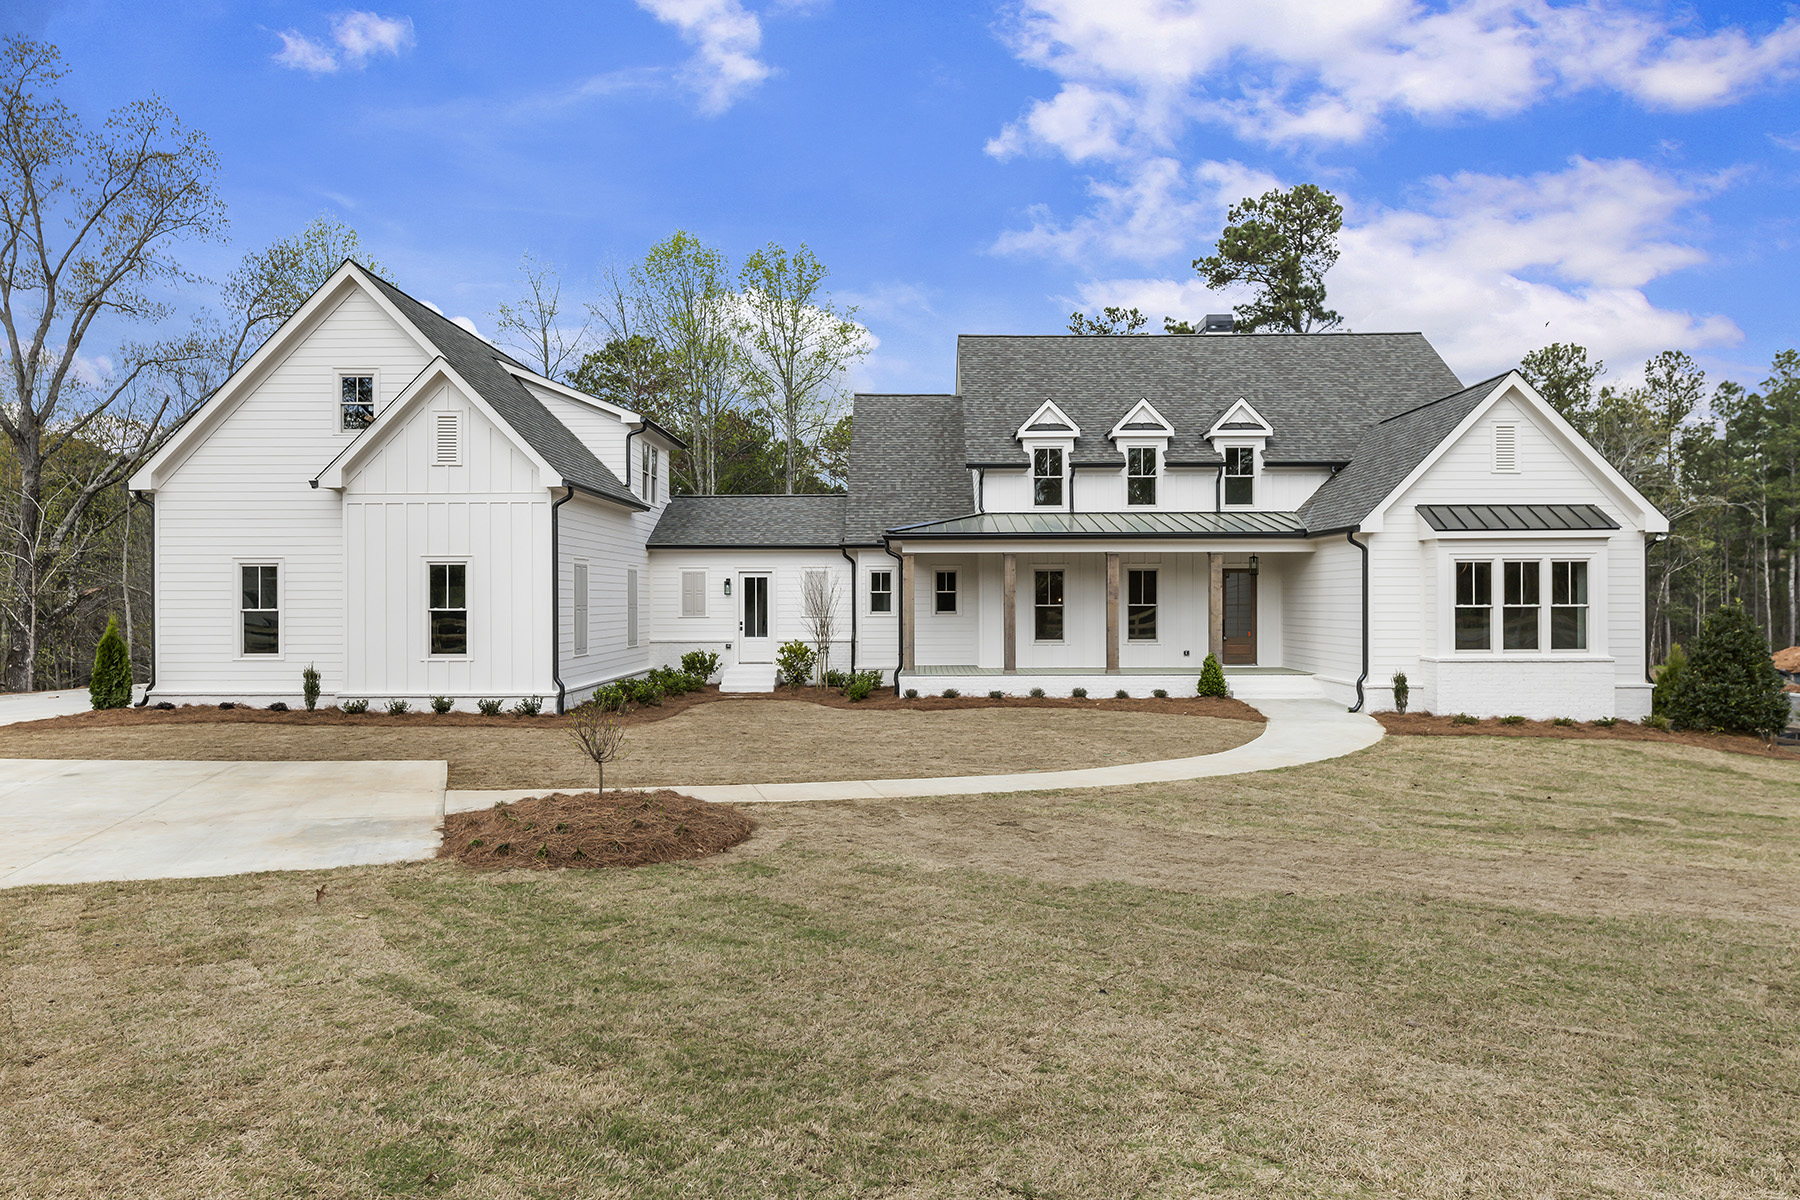 Single Family Homes for Sale at New Construction Ready Soon 1223 Old Lathemtown Road Canton, Georgia 30115 United States